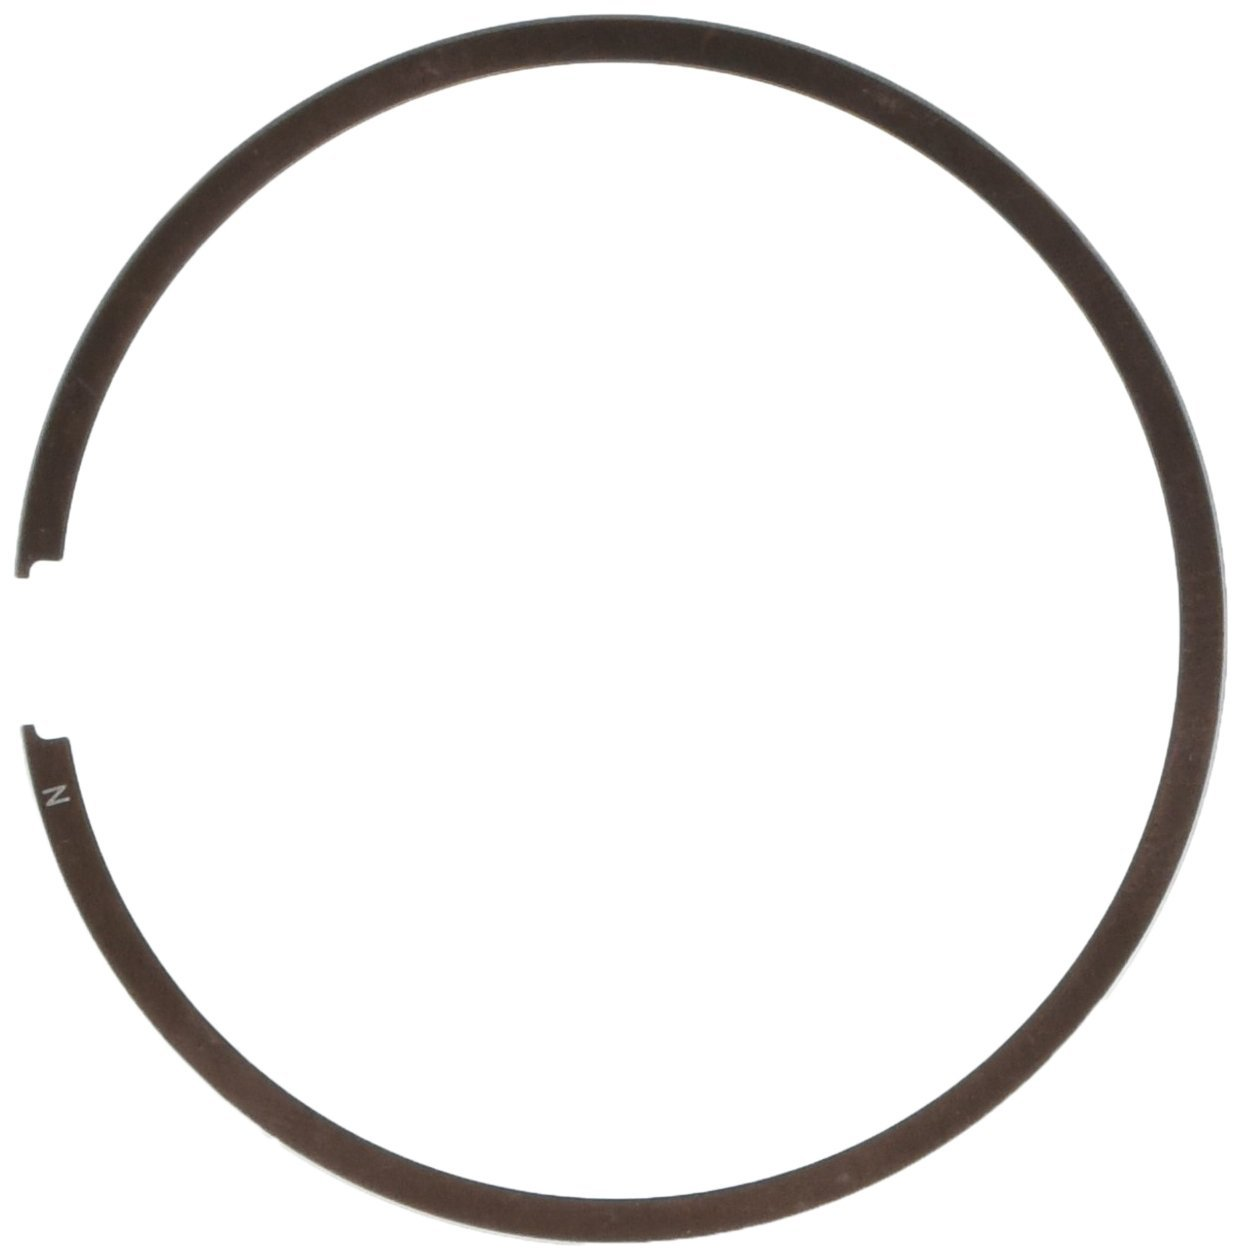 Wiseco 2284CS Single Ring for 58.00mm Cylinder Bore